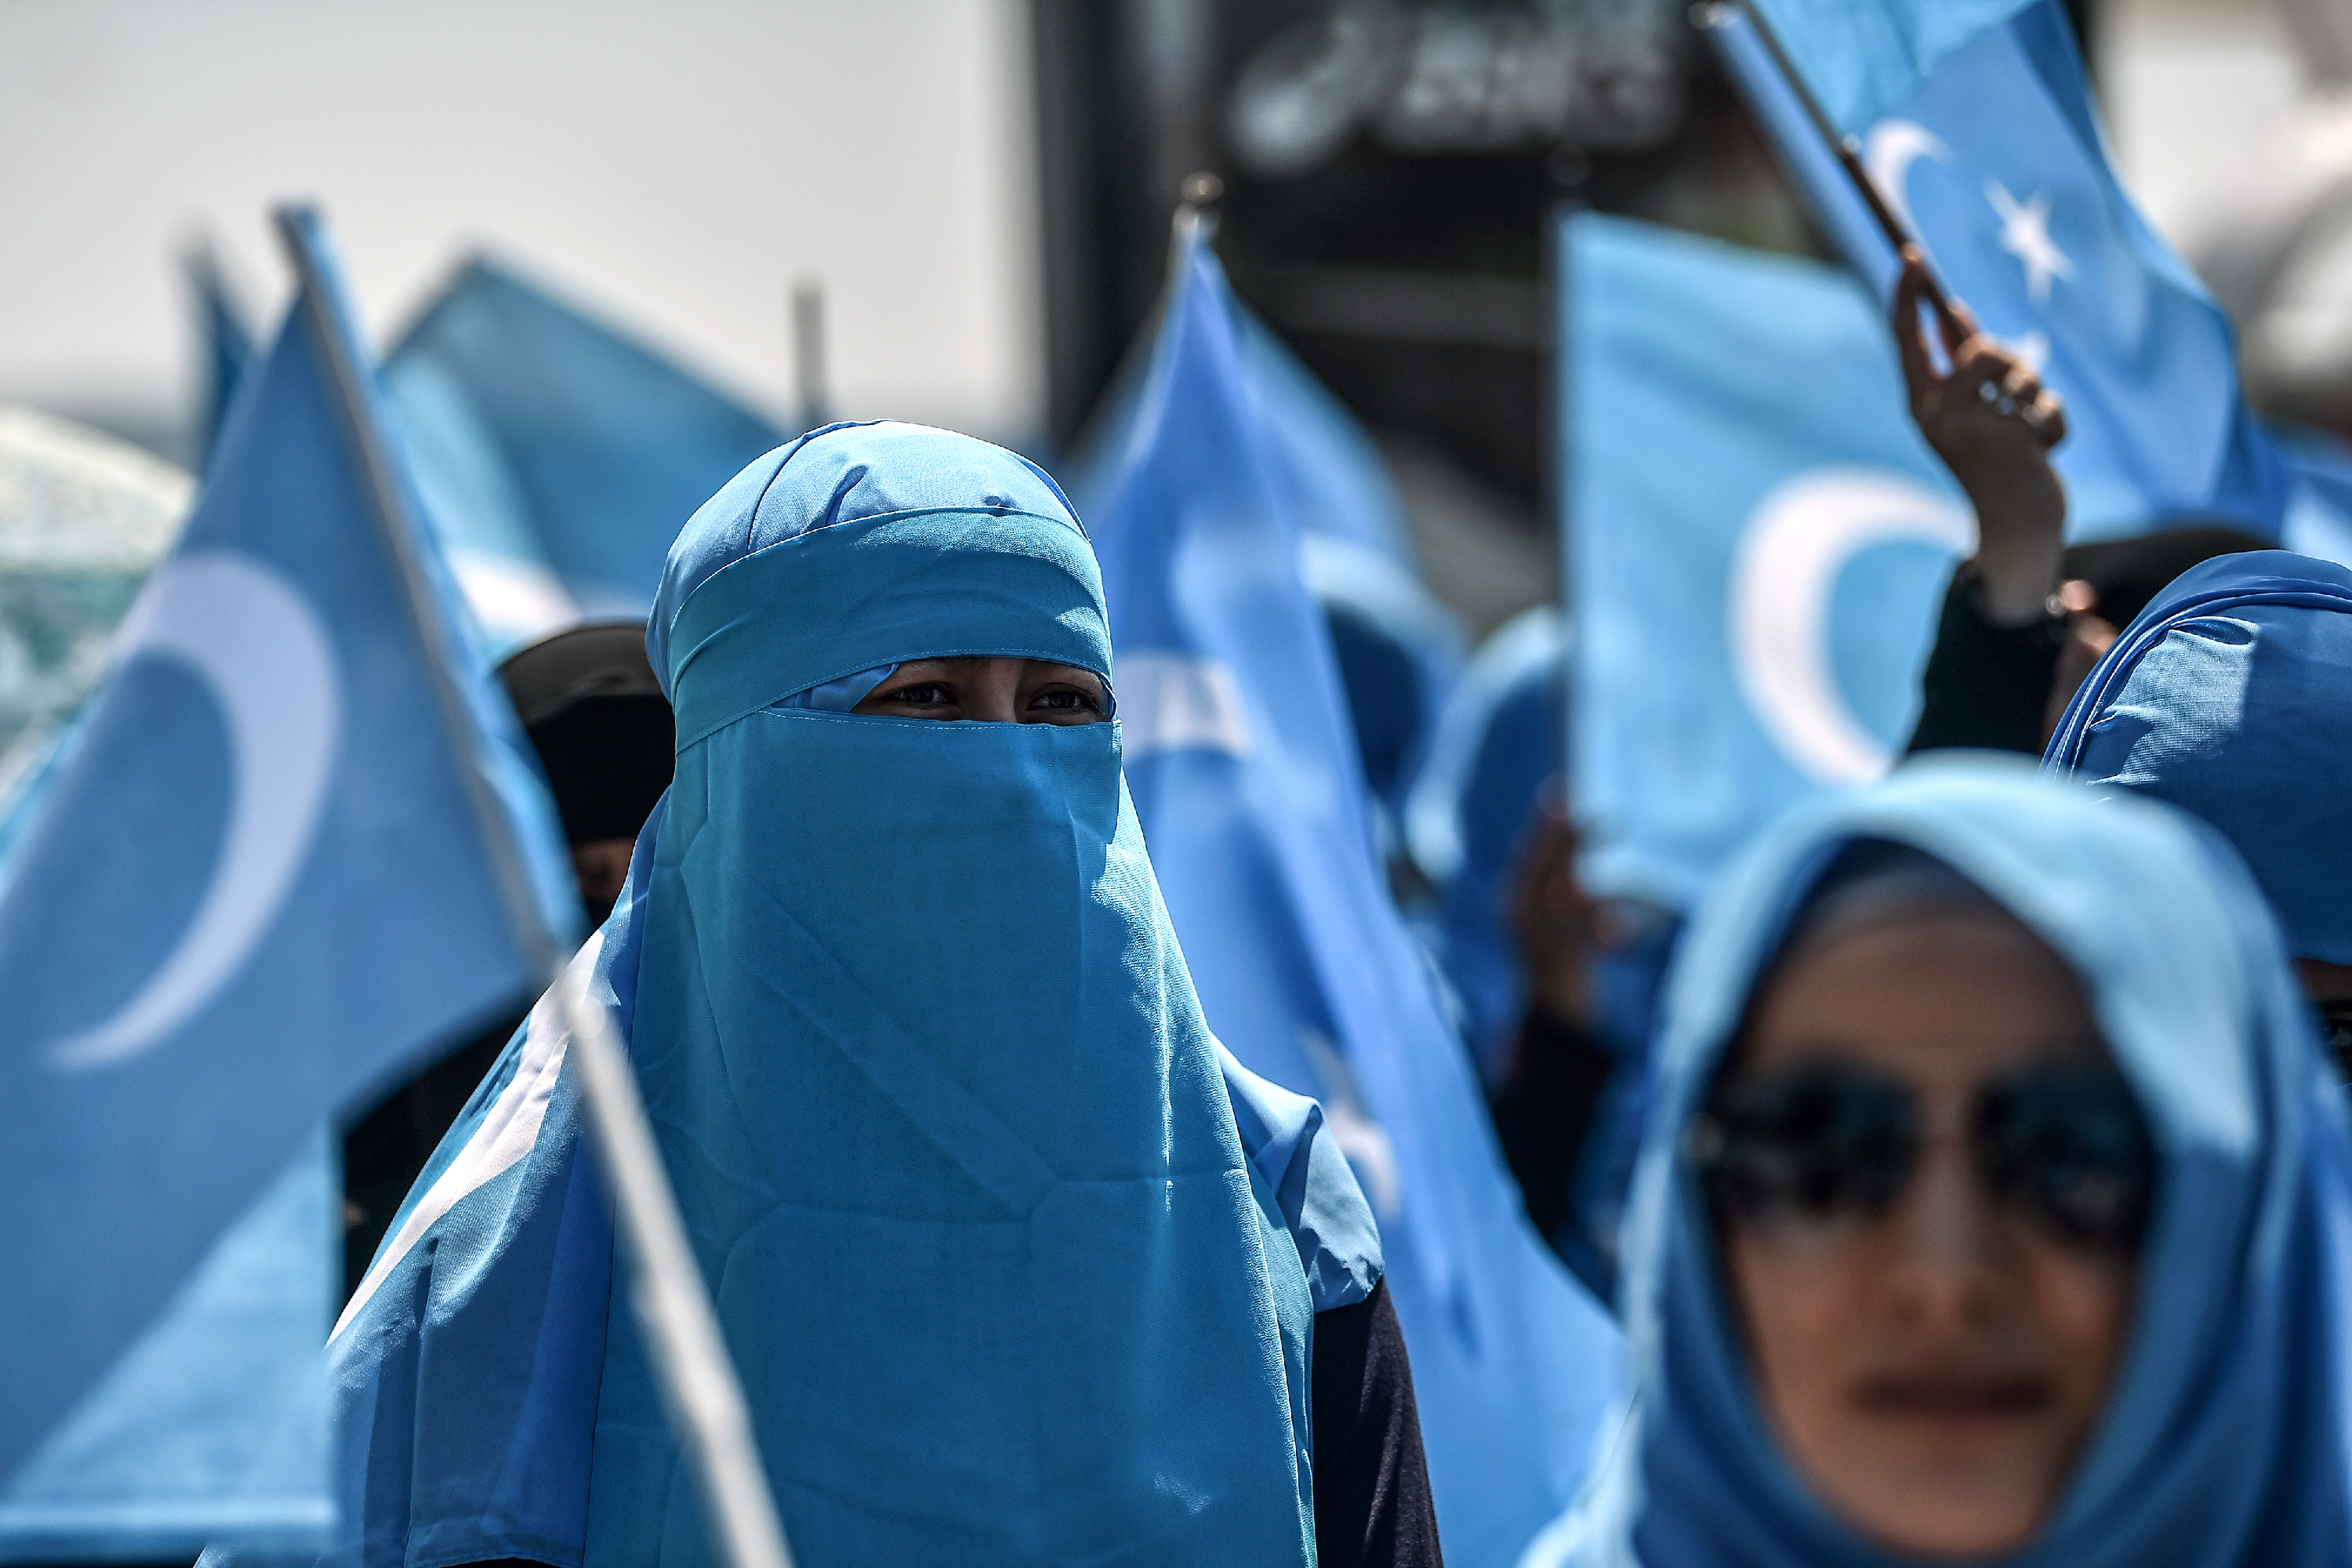 Demonstrators waving the flag of East Turkestan attend a protest of supporters of the mostly Muslim Uighur minority and Turkish nationalists to denounce China's treatment of ethnic Uighur Muslims during a deadly riot in July 2009 in Urumqi, in front of the Chinese consulate in Istanbul, on July 5, 2018. - Nearly 200 people died during a series of violent riots that broke out on July 5, 2009 over several days in Urumqi, the capital city of the Xinjiang Uyghur Autonomous Region, in northwestern China, between Uyghurs and Han people. (Photo by OZAN KOSE / AFP)